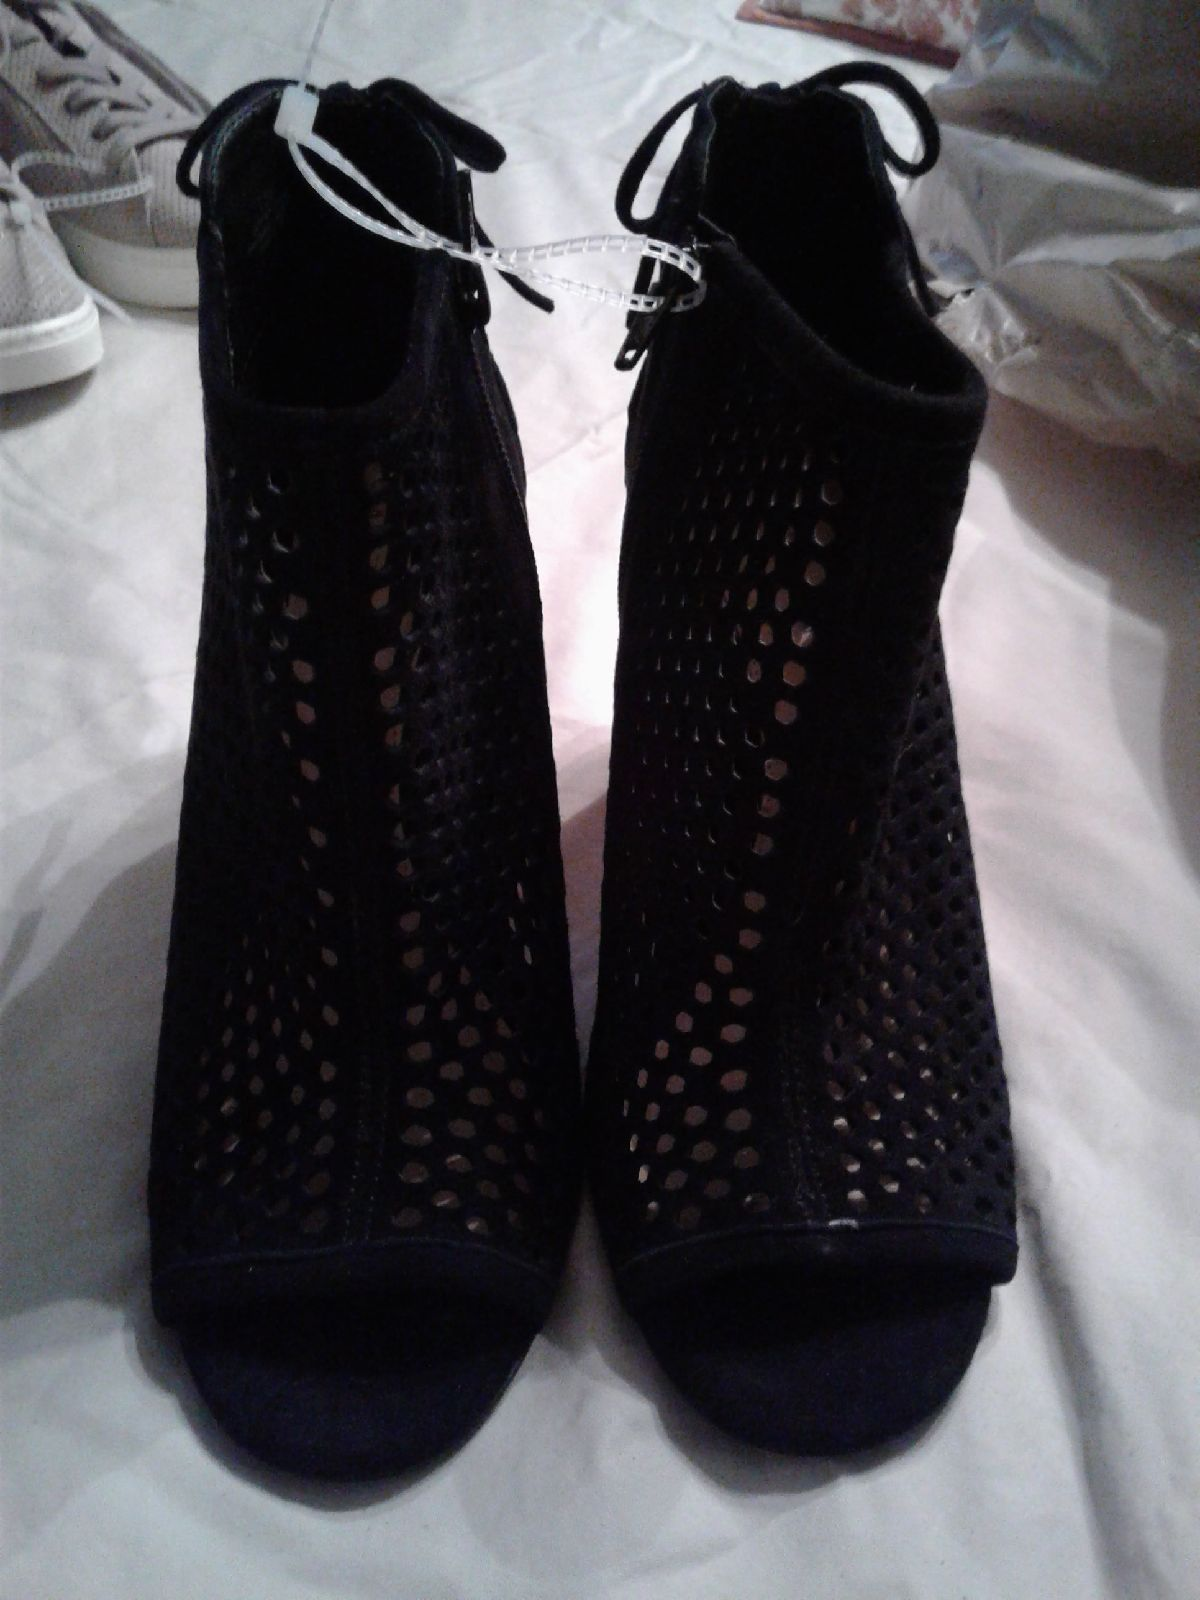 Ankle Boots GIANI Bini 7.5 NEW